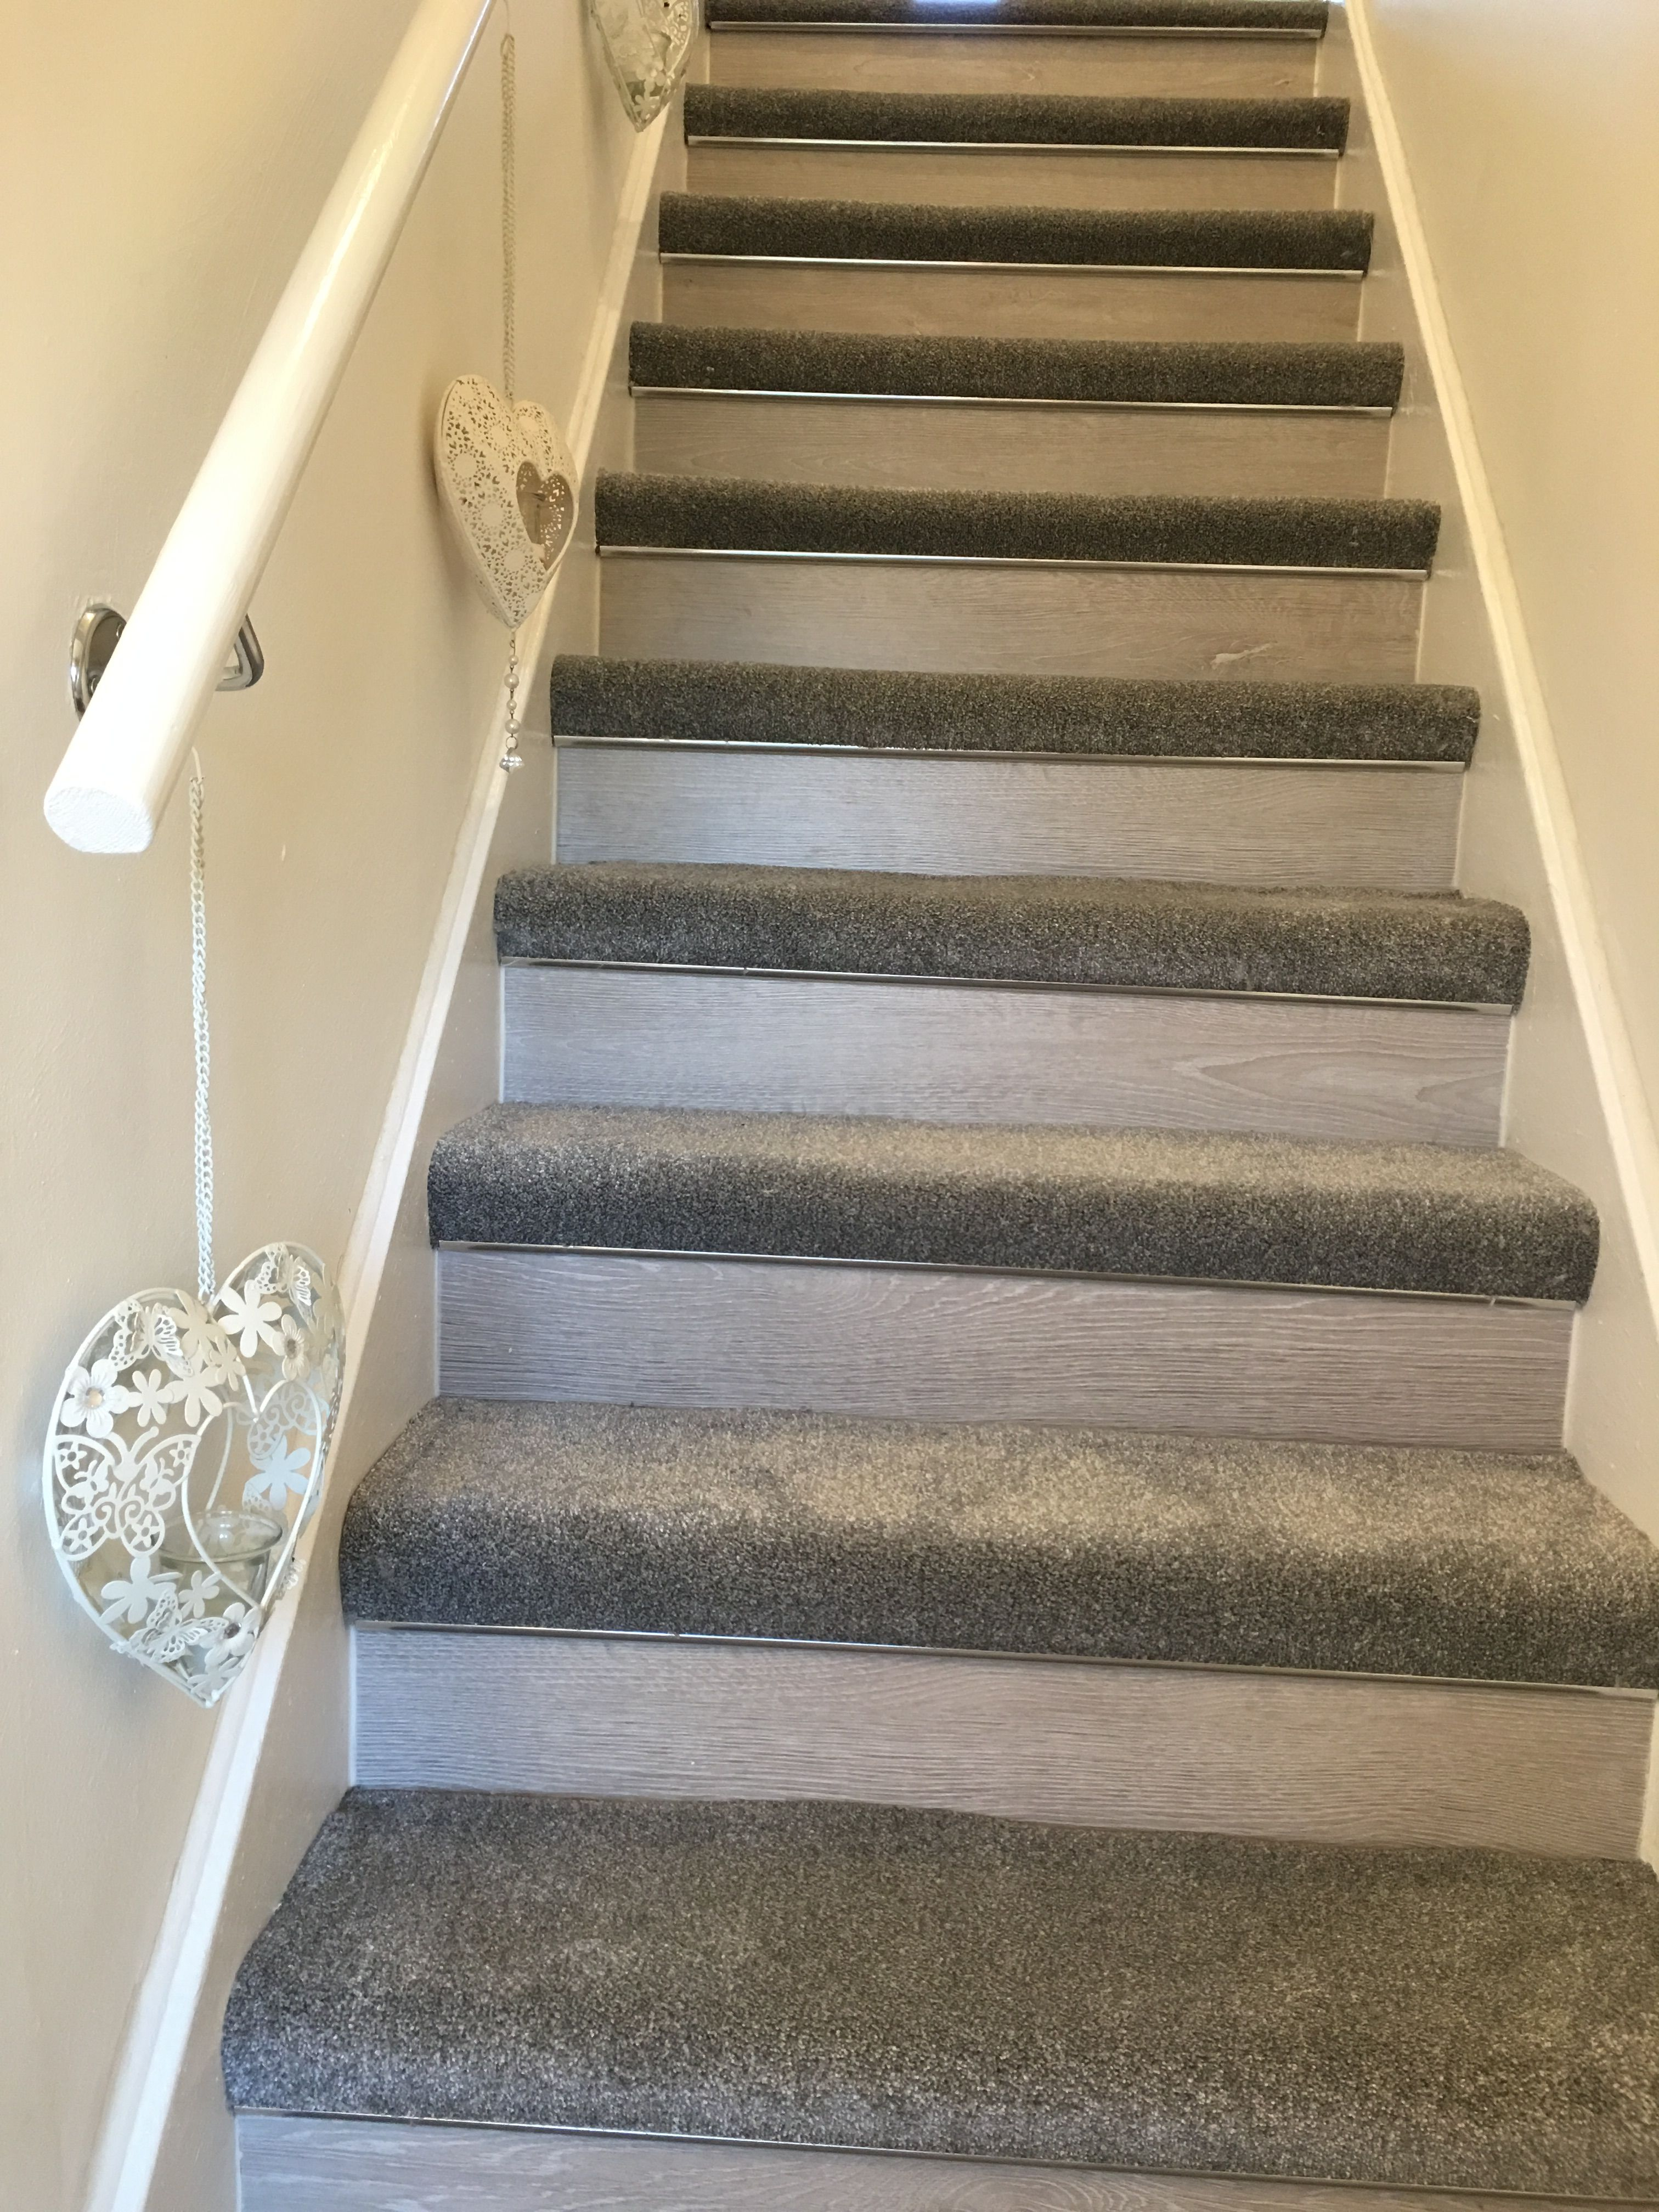 34+ Grey wood and carpet stairs combination ideas